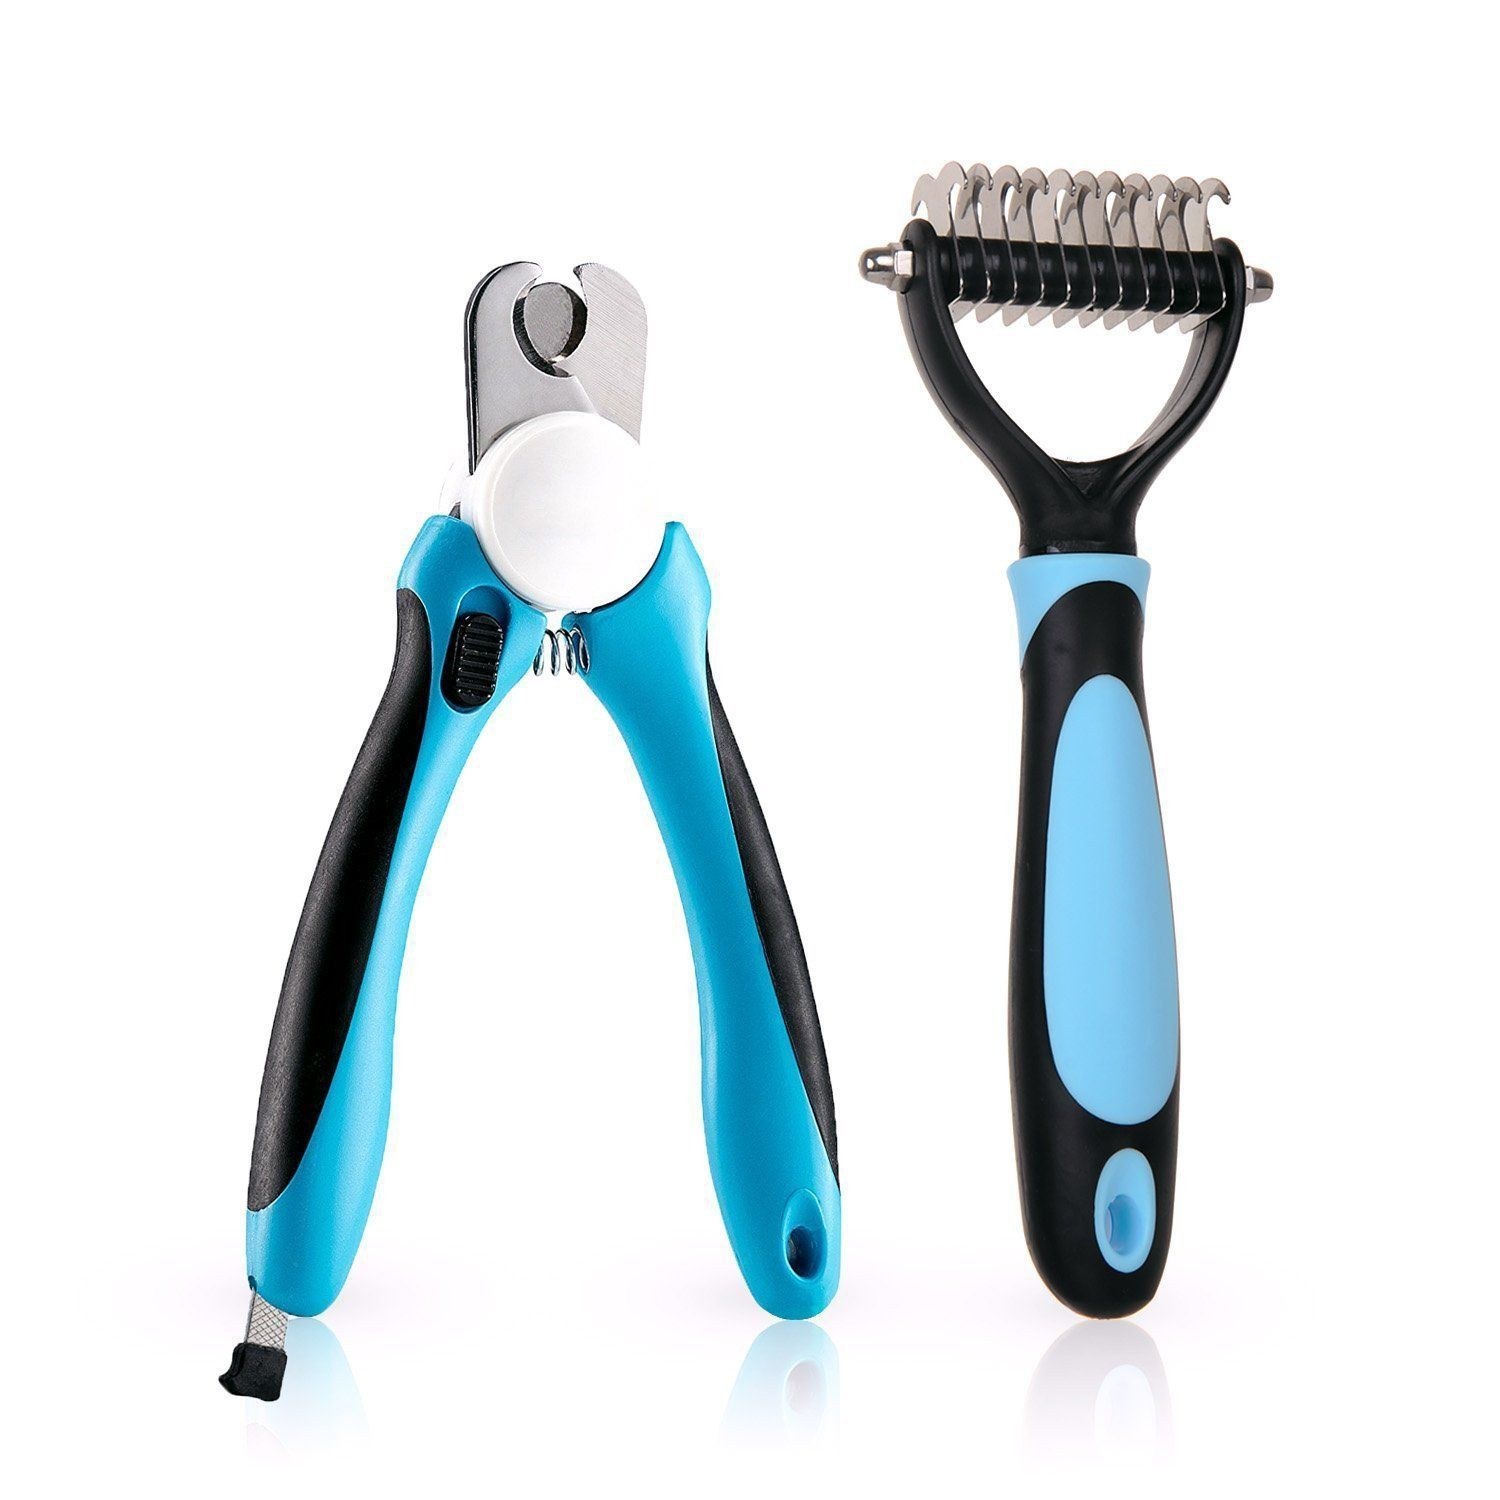 Dog Nail Clippers Dematting Comb for Dogs The Most